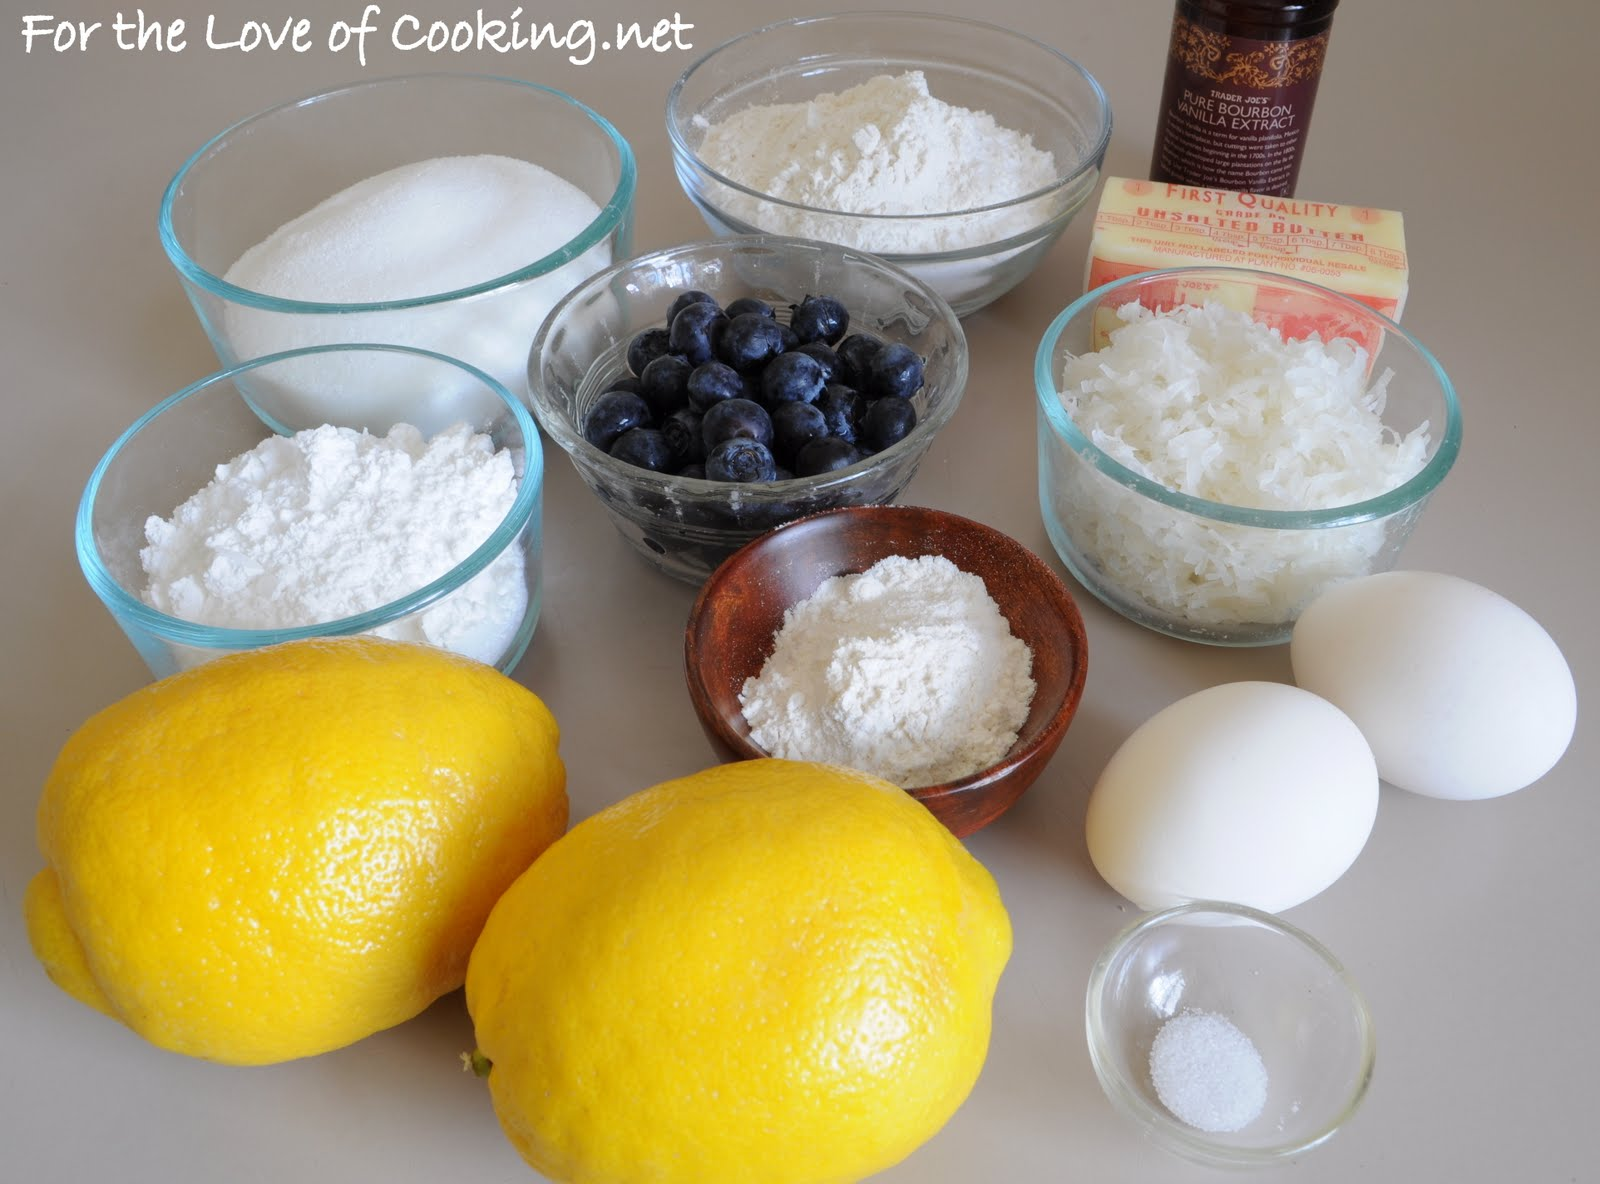 Lemon Blueberry Bars With Coconut Crust Recipe — Dishmaps